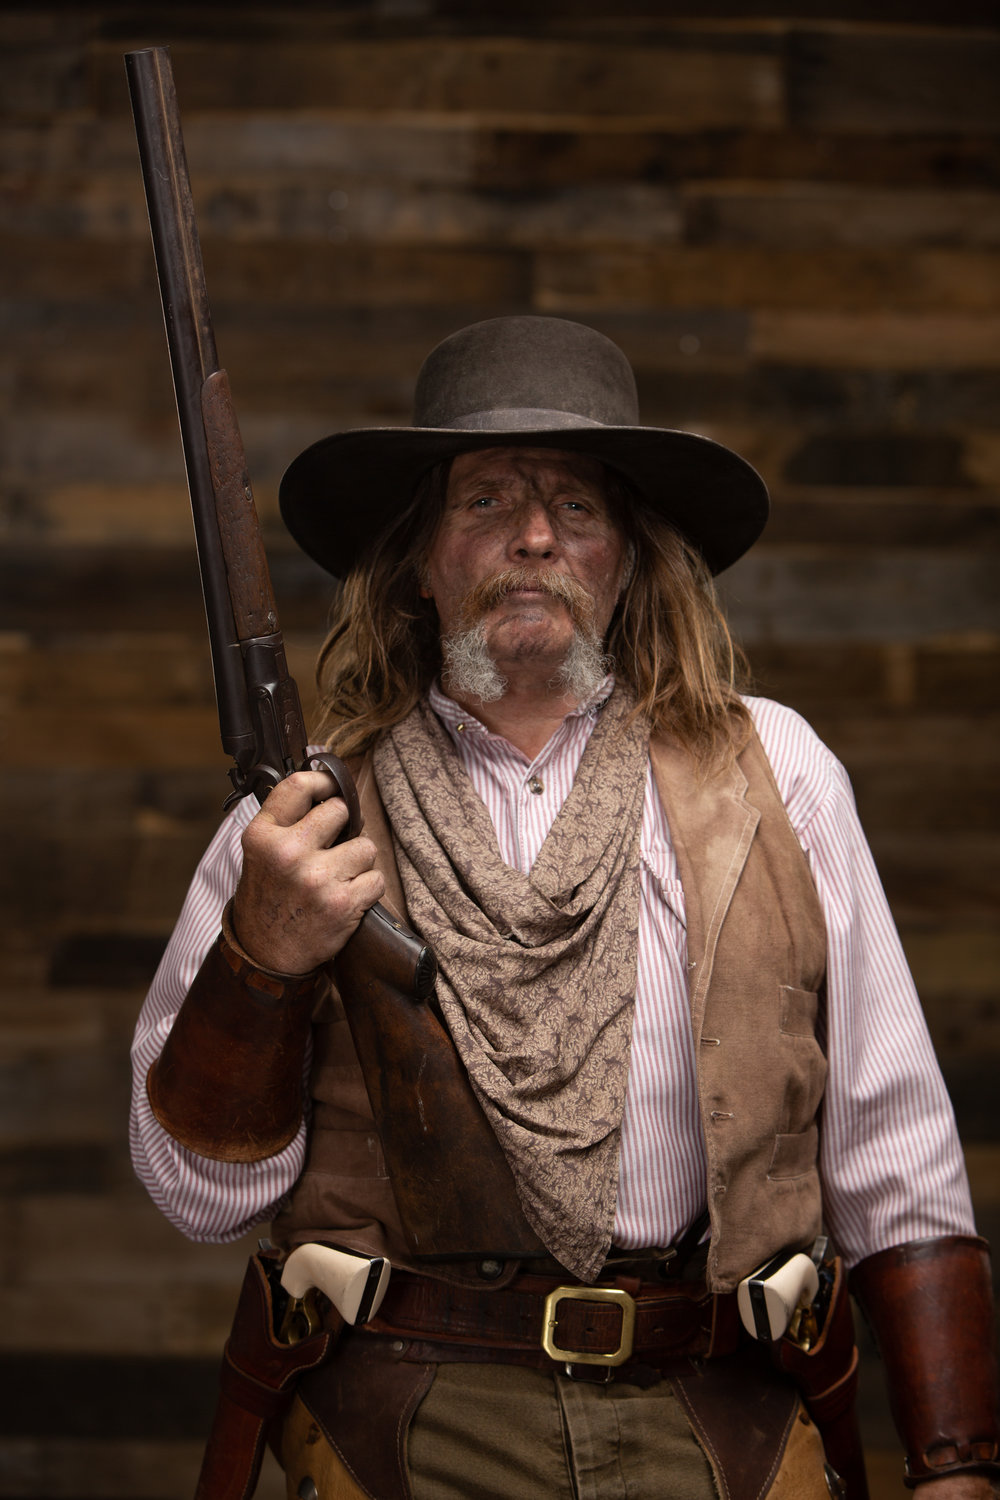 - Just one of the looks Canyon Red brought to the studio. Here, in his period correct cowboy outfit, he looks like he's just returned from either rustling some cattle or maybe even robbing a stagecoach or two.